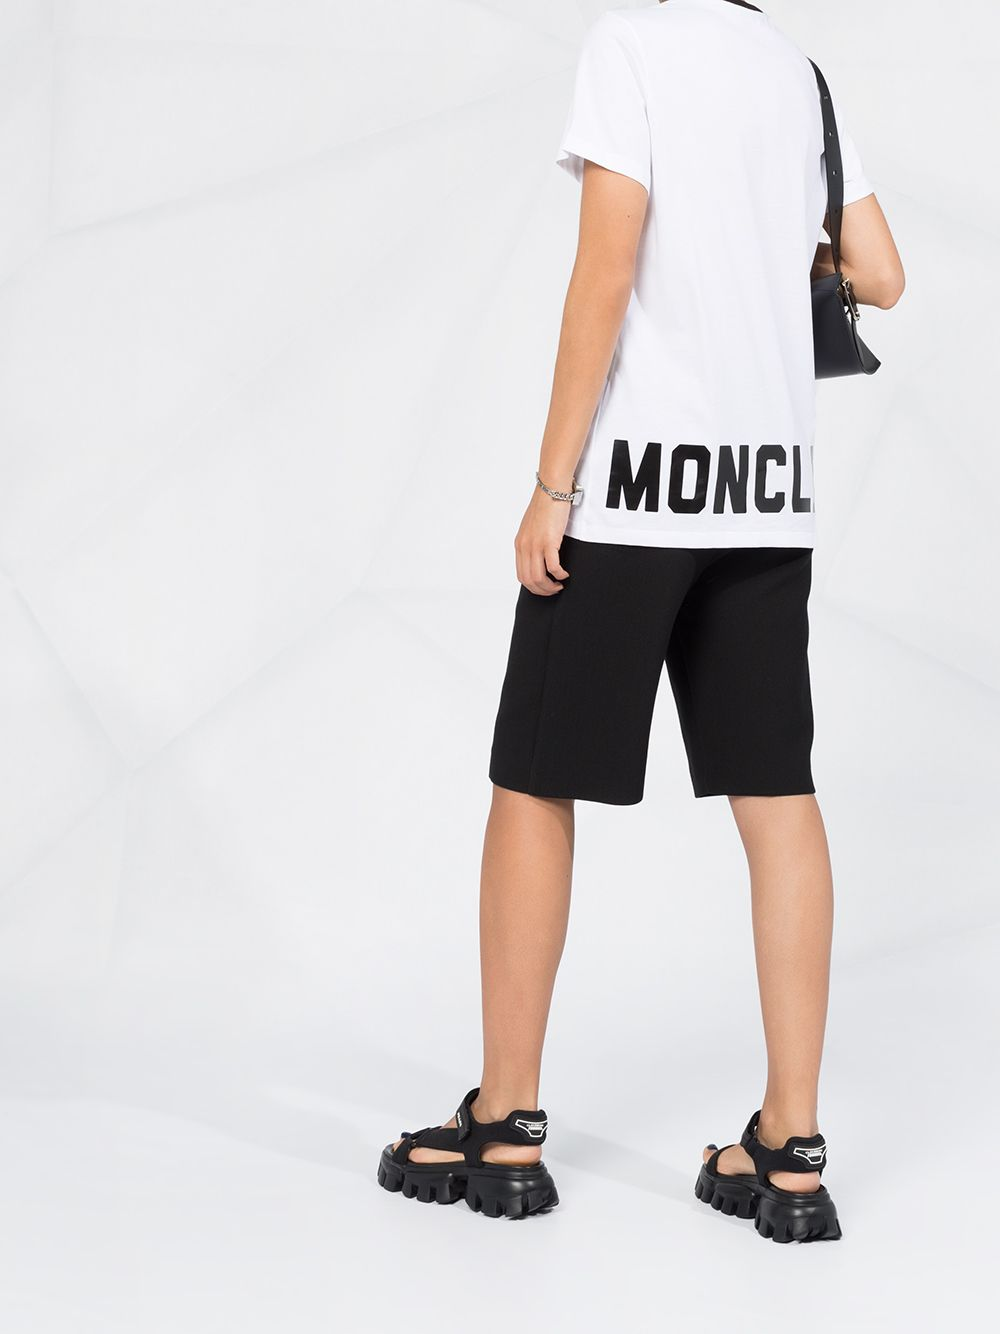 white cotton short sleeved t.shirt with contrasting black collar MONCLER |  | 8C778-10-V8161001